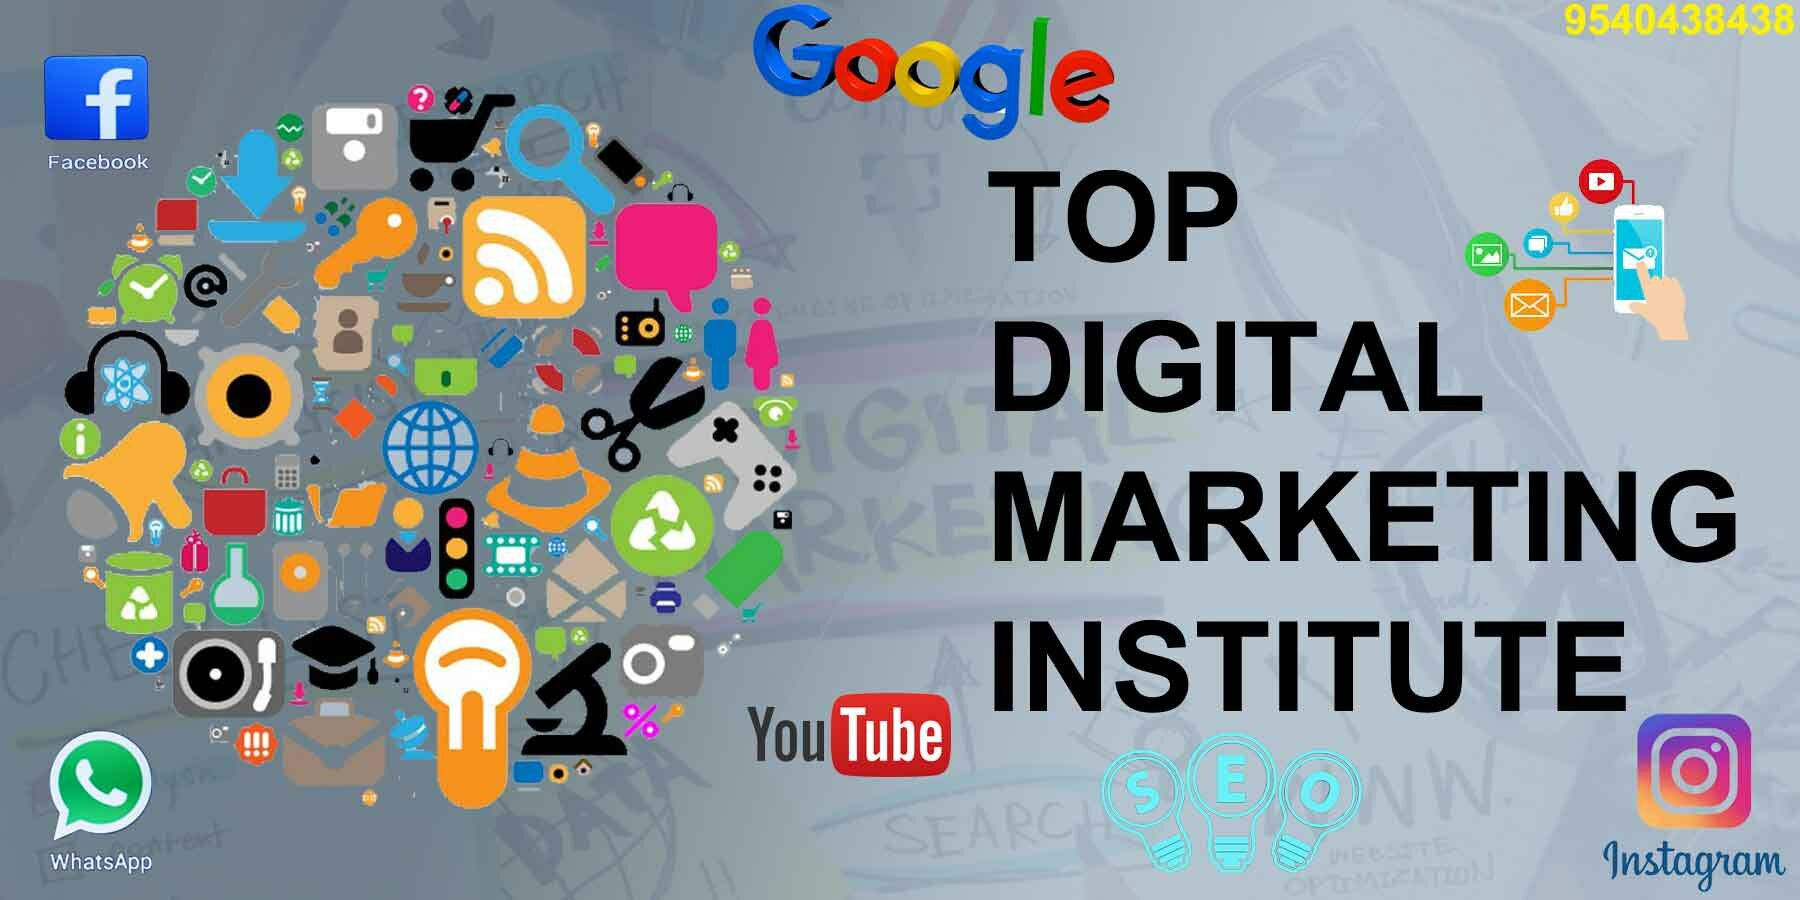 Top Digital Marketing Institute